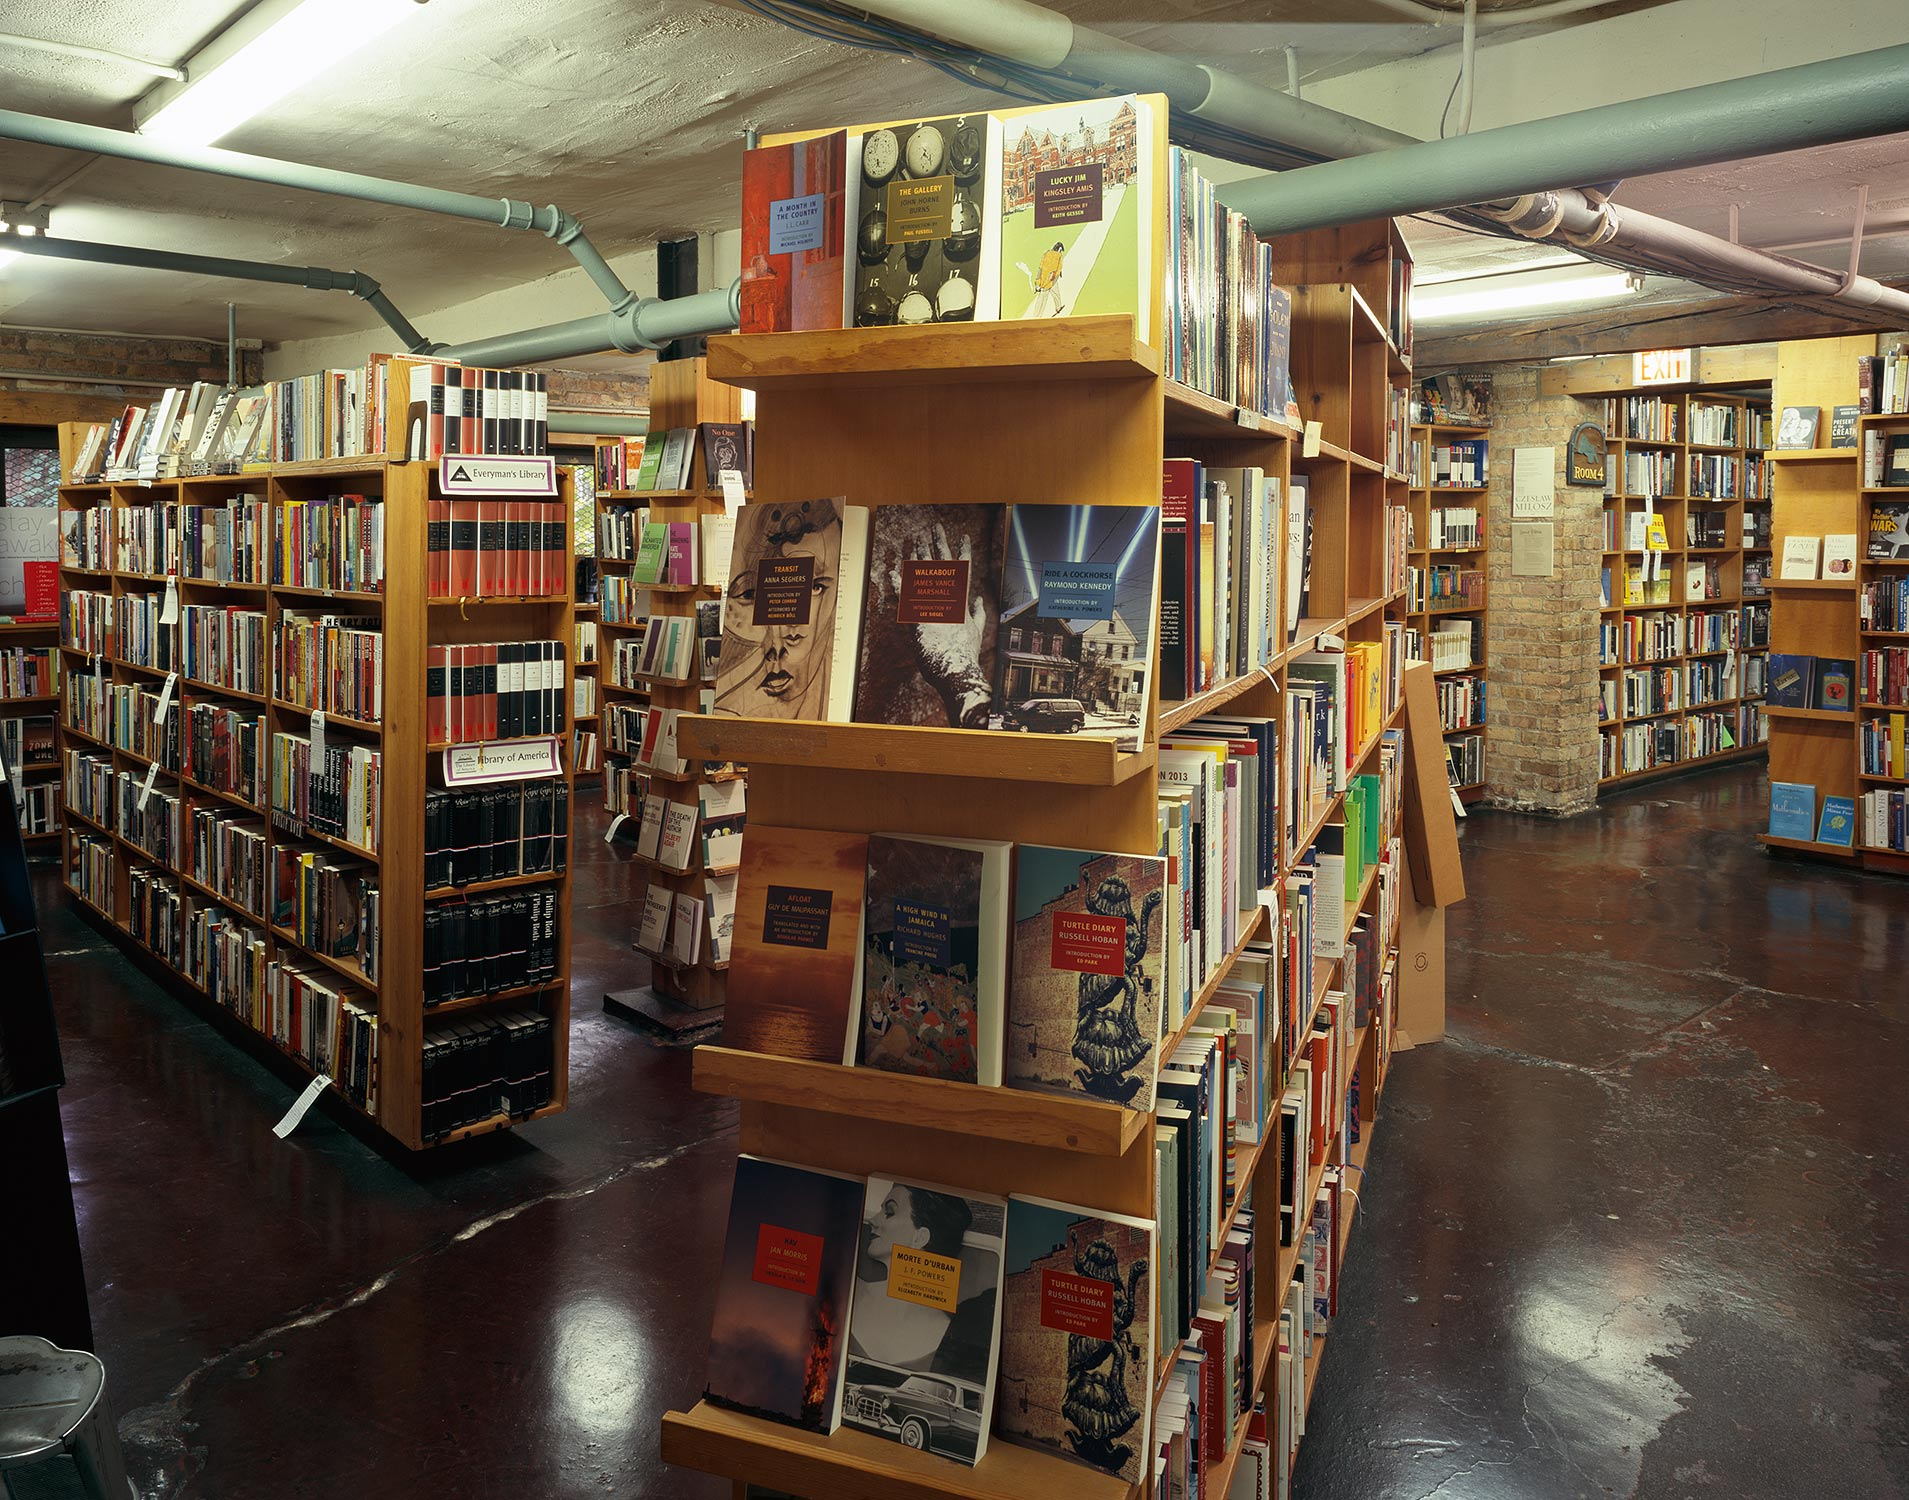 Bookshelves and Pipes, 57th Street Bookstore, Chicago